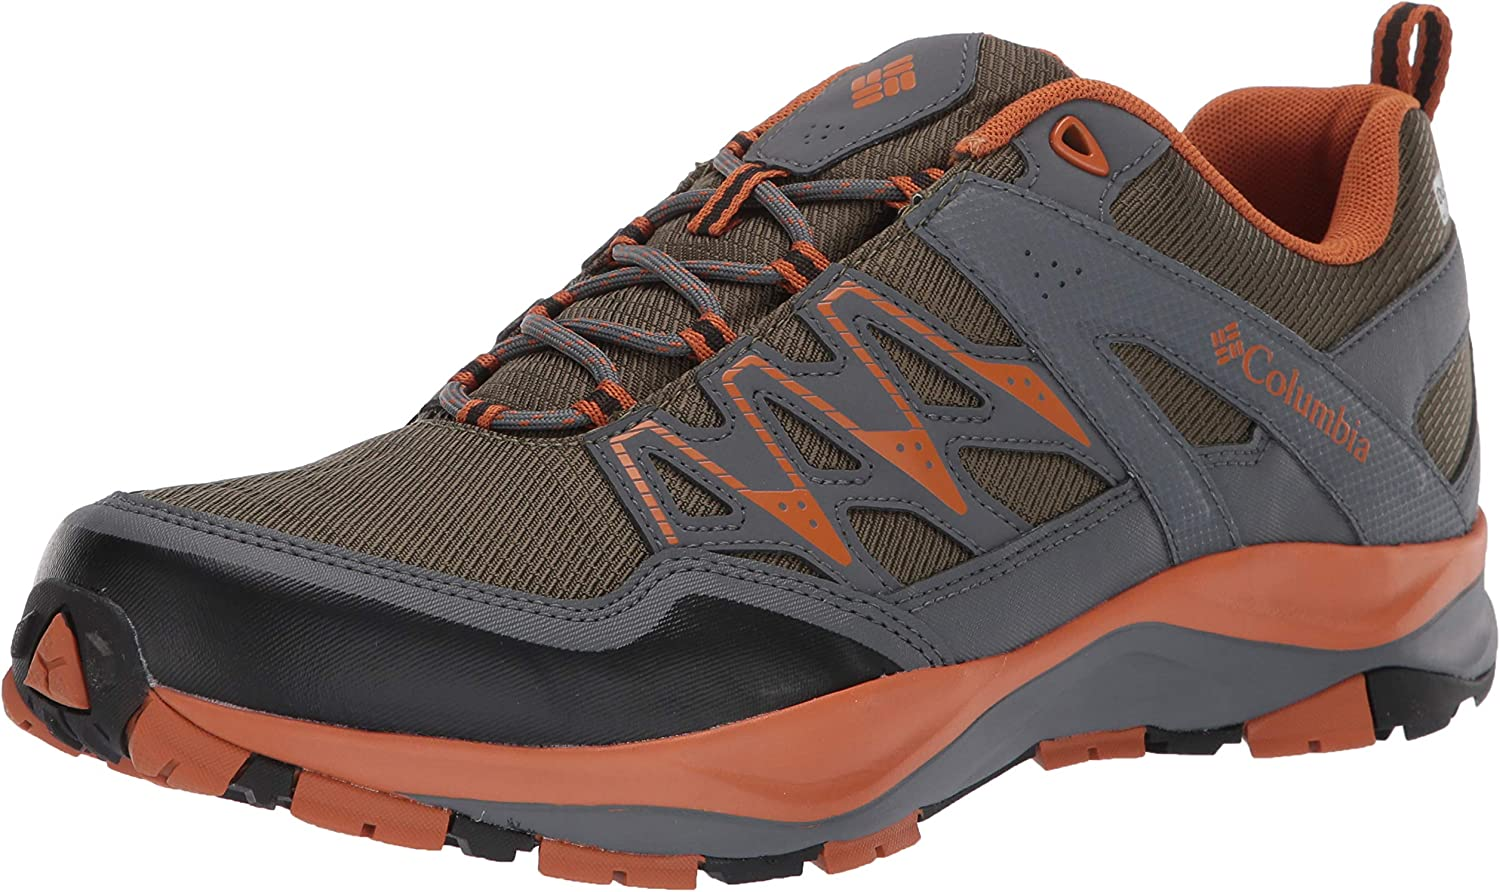 754c5a8d362 Columbia Men's WAYFINDER Hiking shoes Outdry nplvnz1564-Sporting ...